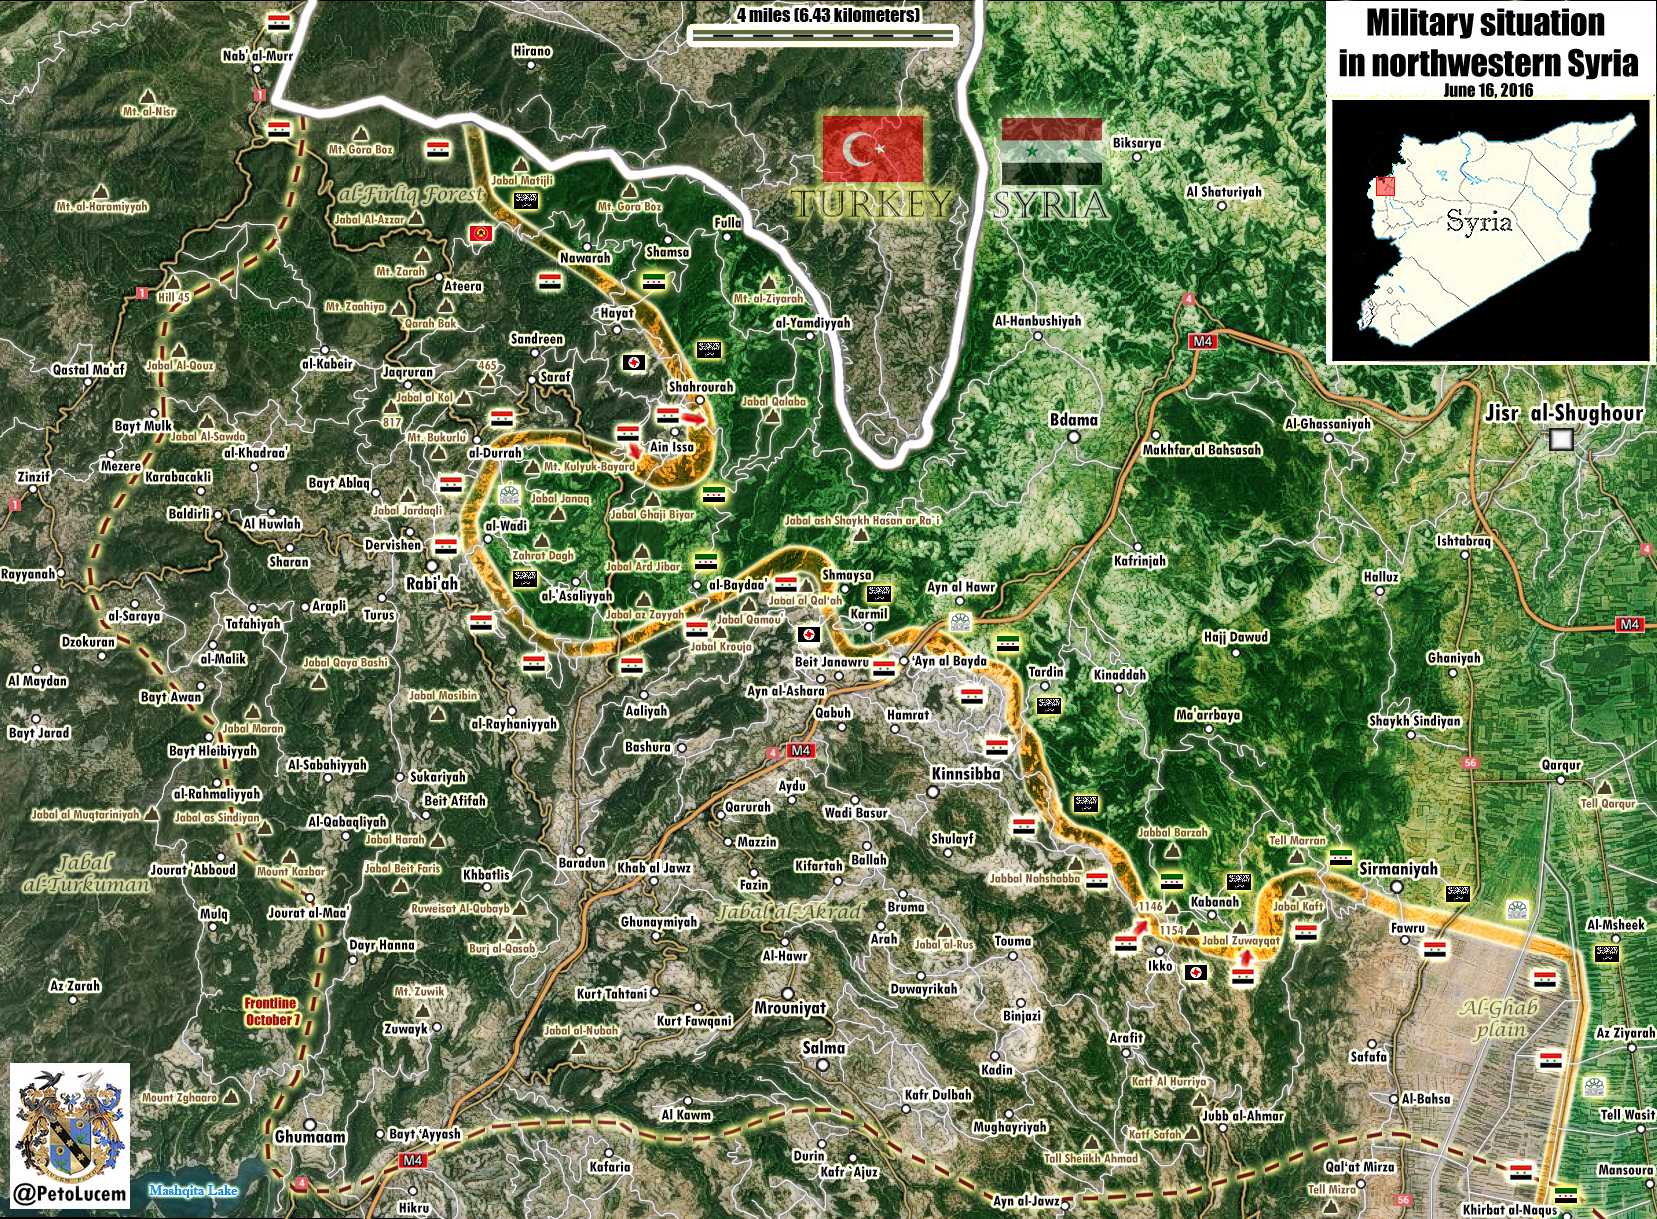 Syrian Army Succeeds in Latakia Province amid Heavy Clashes with All Nusra and Allies